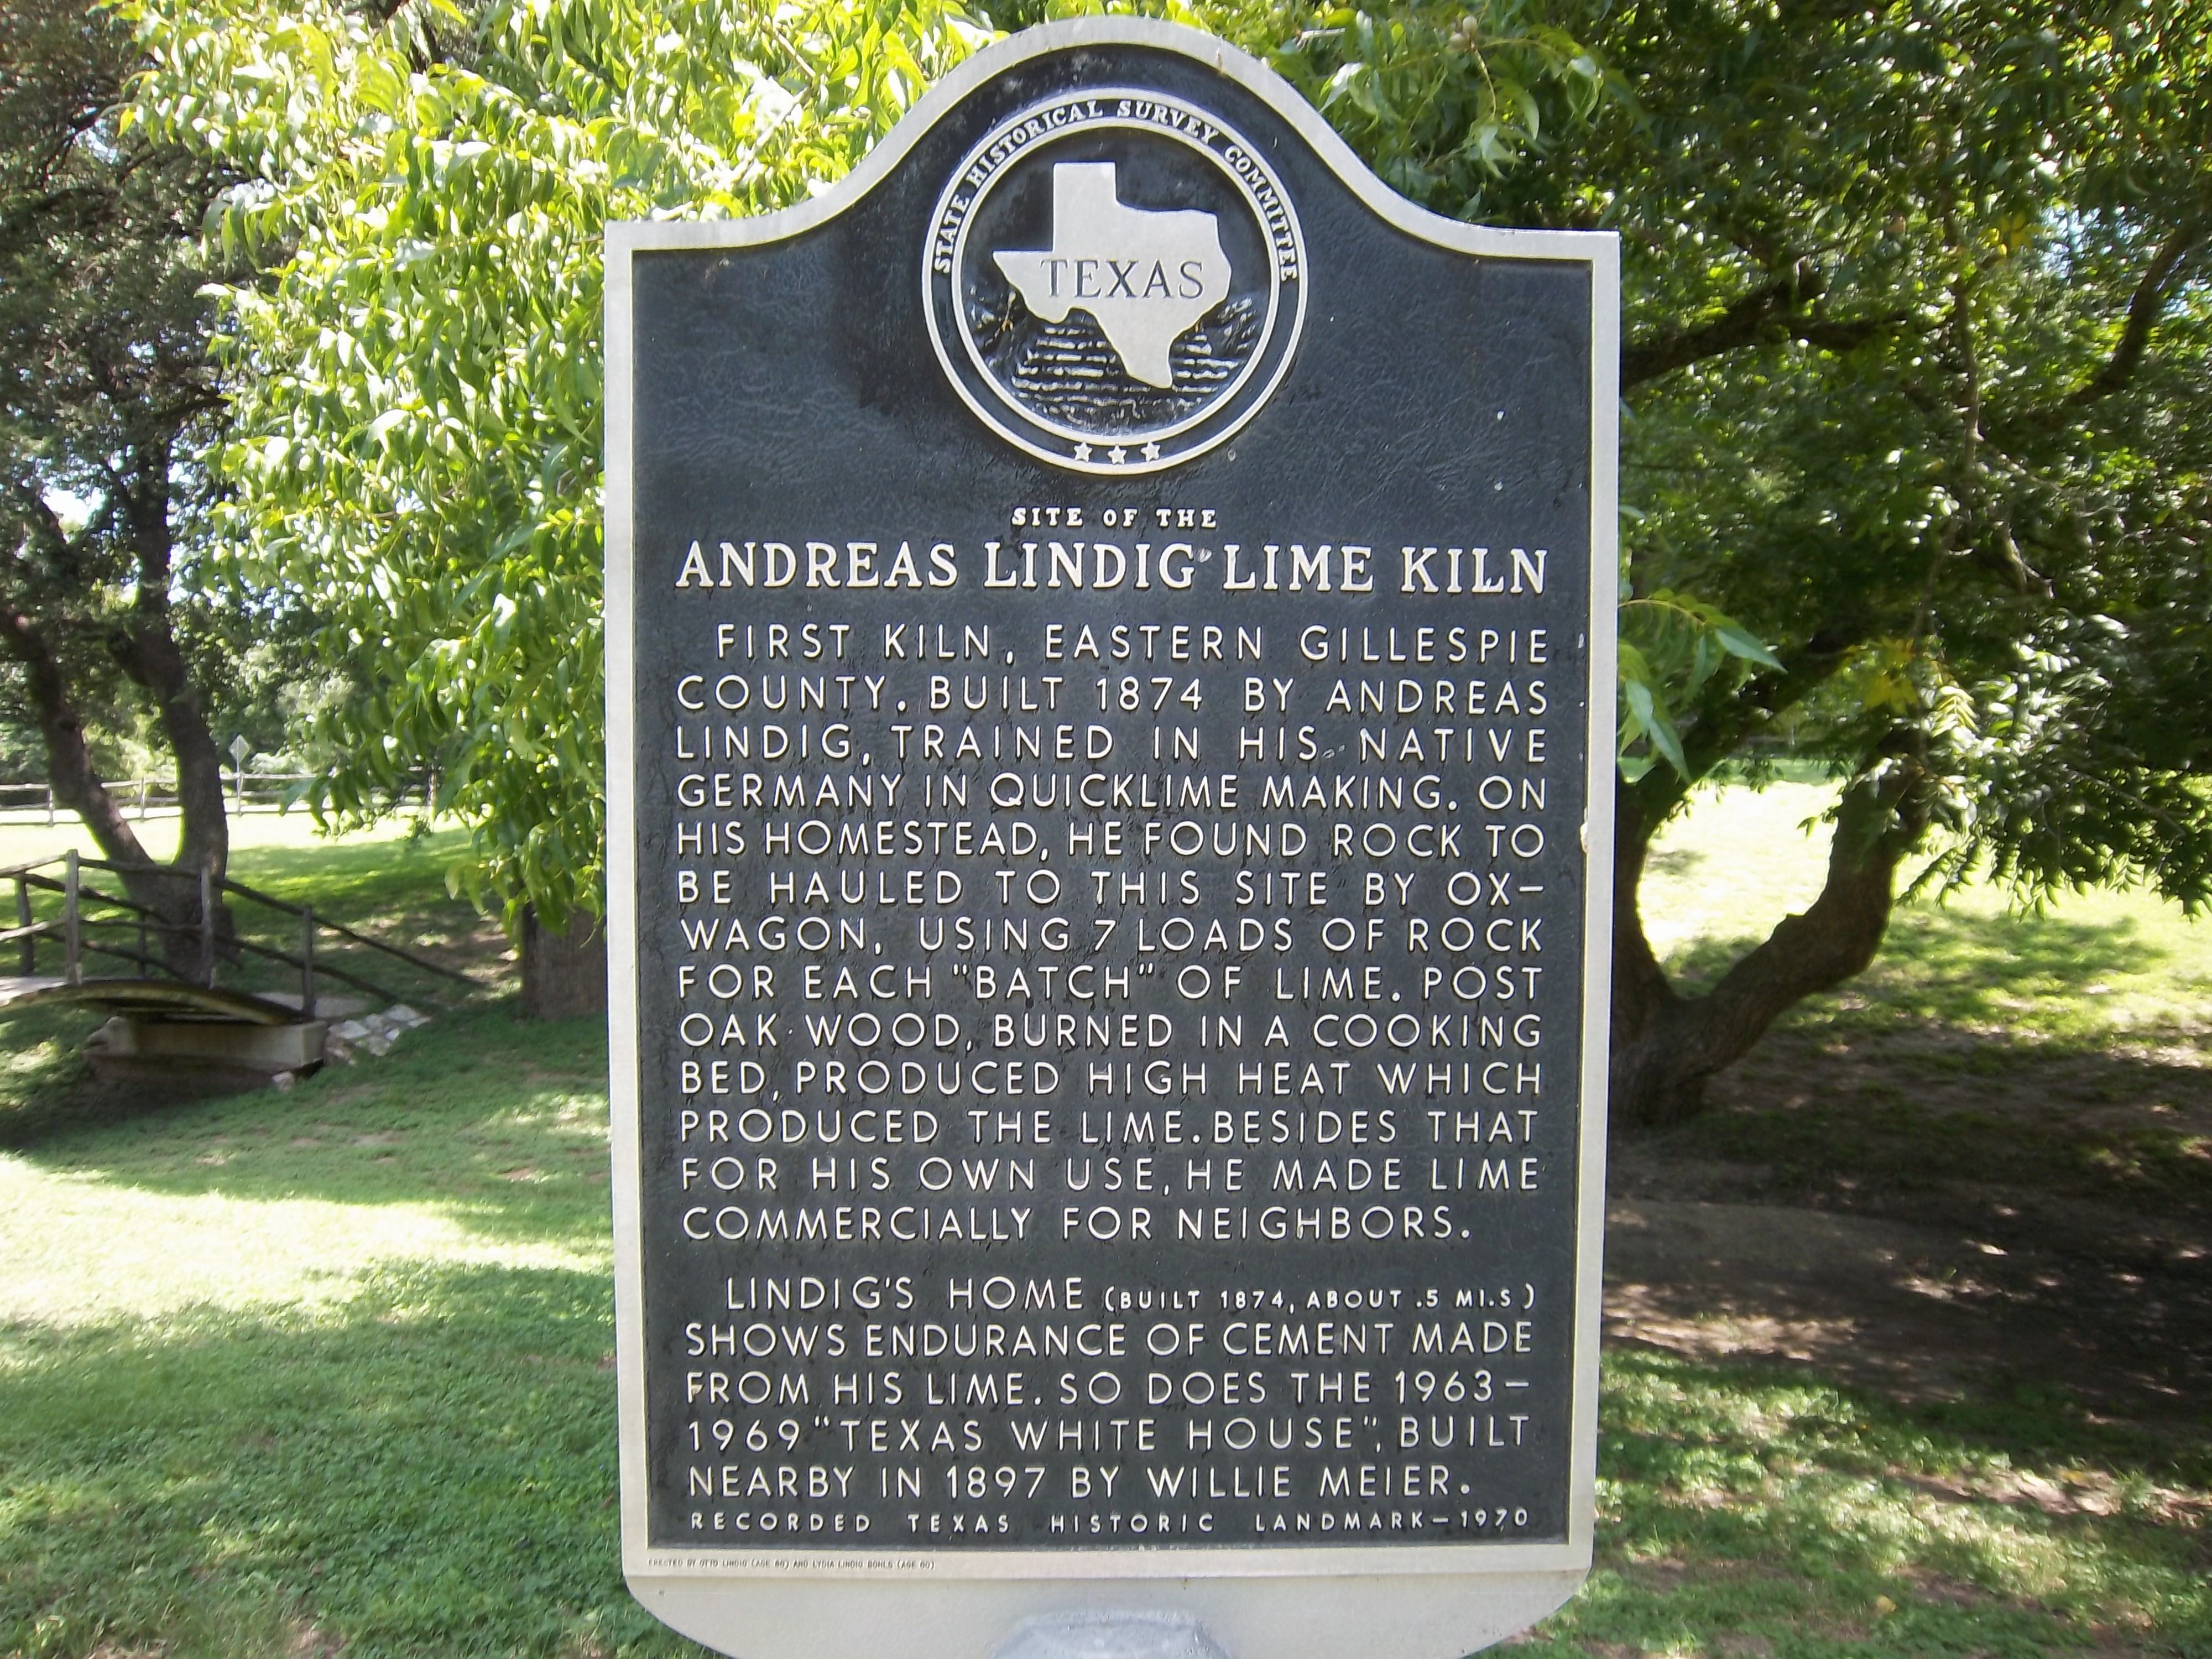 Cement Kilns In Texas : Site of andreas lindig lime kiln stonewall texas